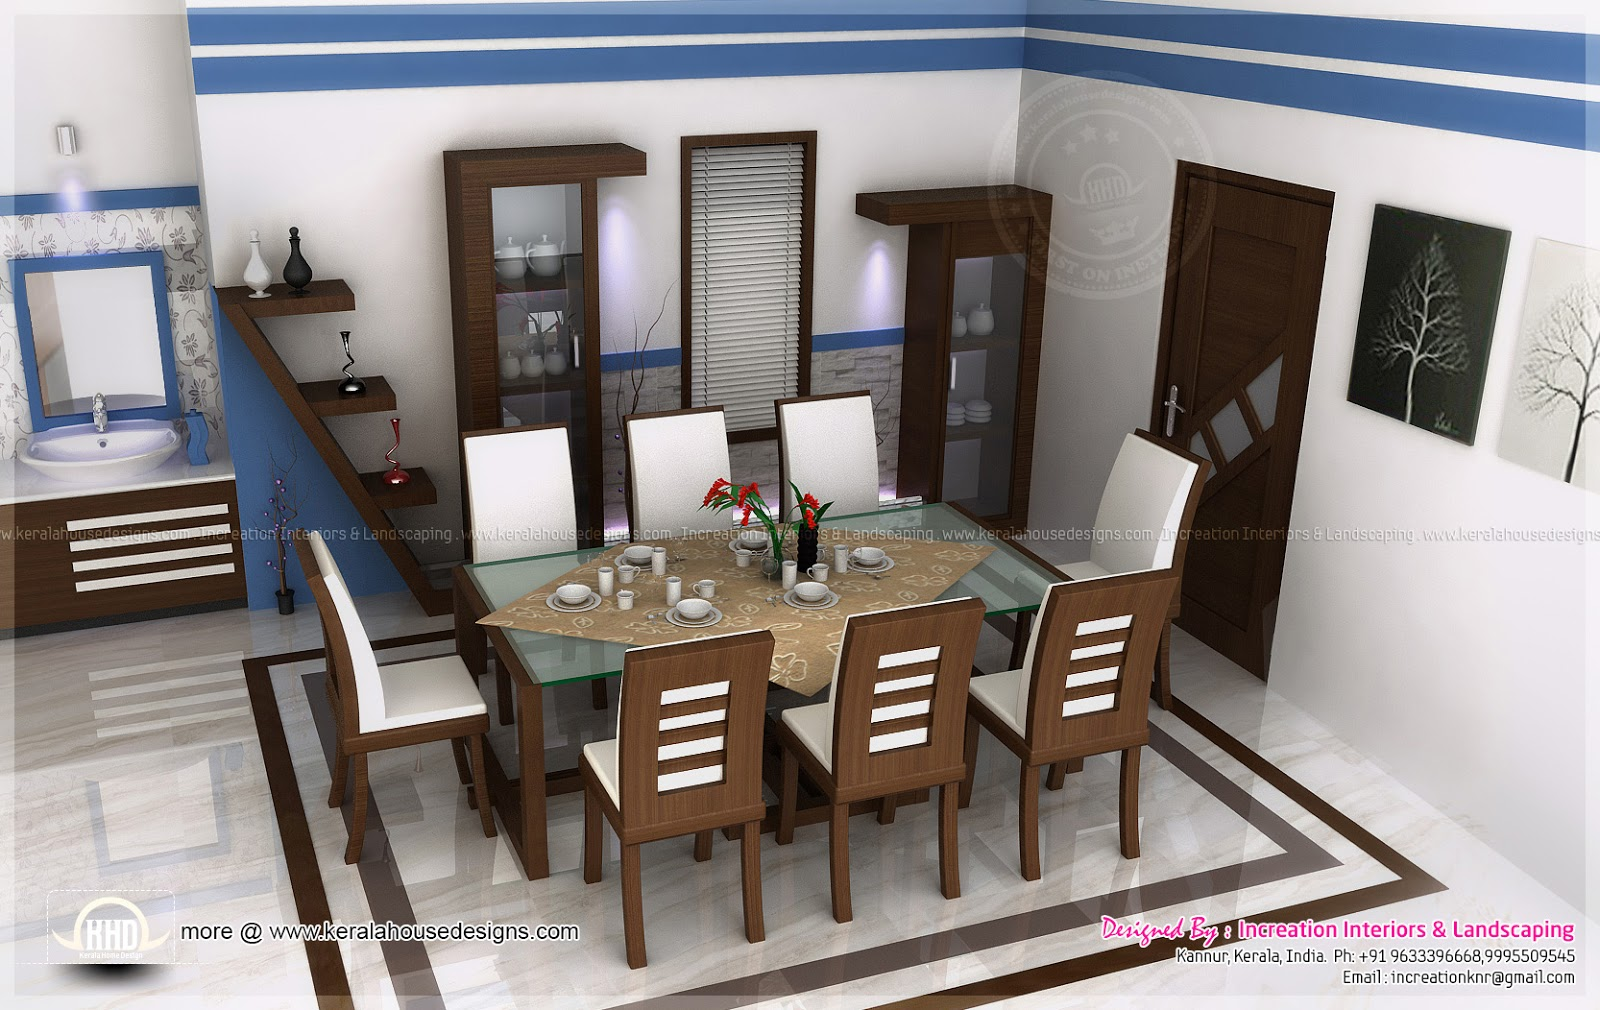 August 2013 kerala home design and floor plans for Interior design for hall and dining room